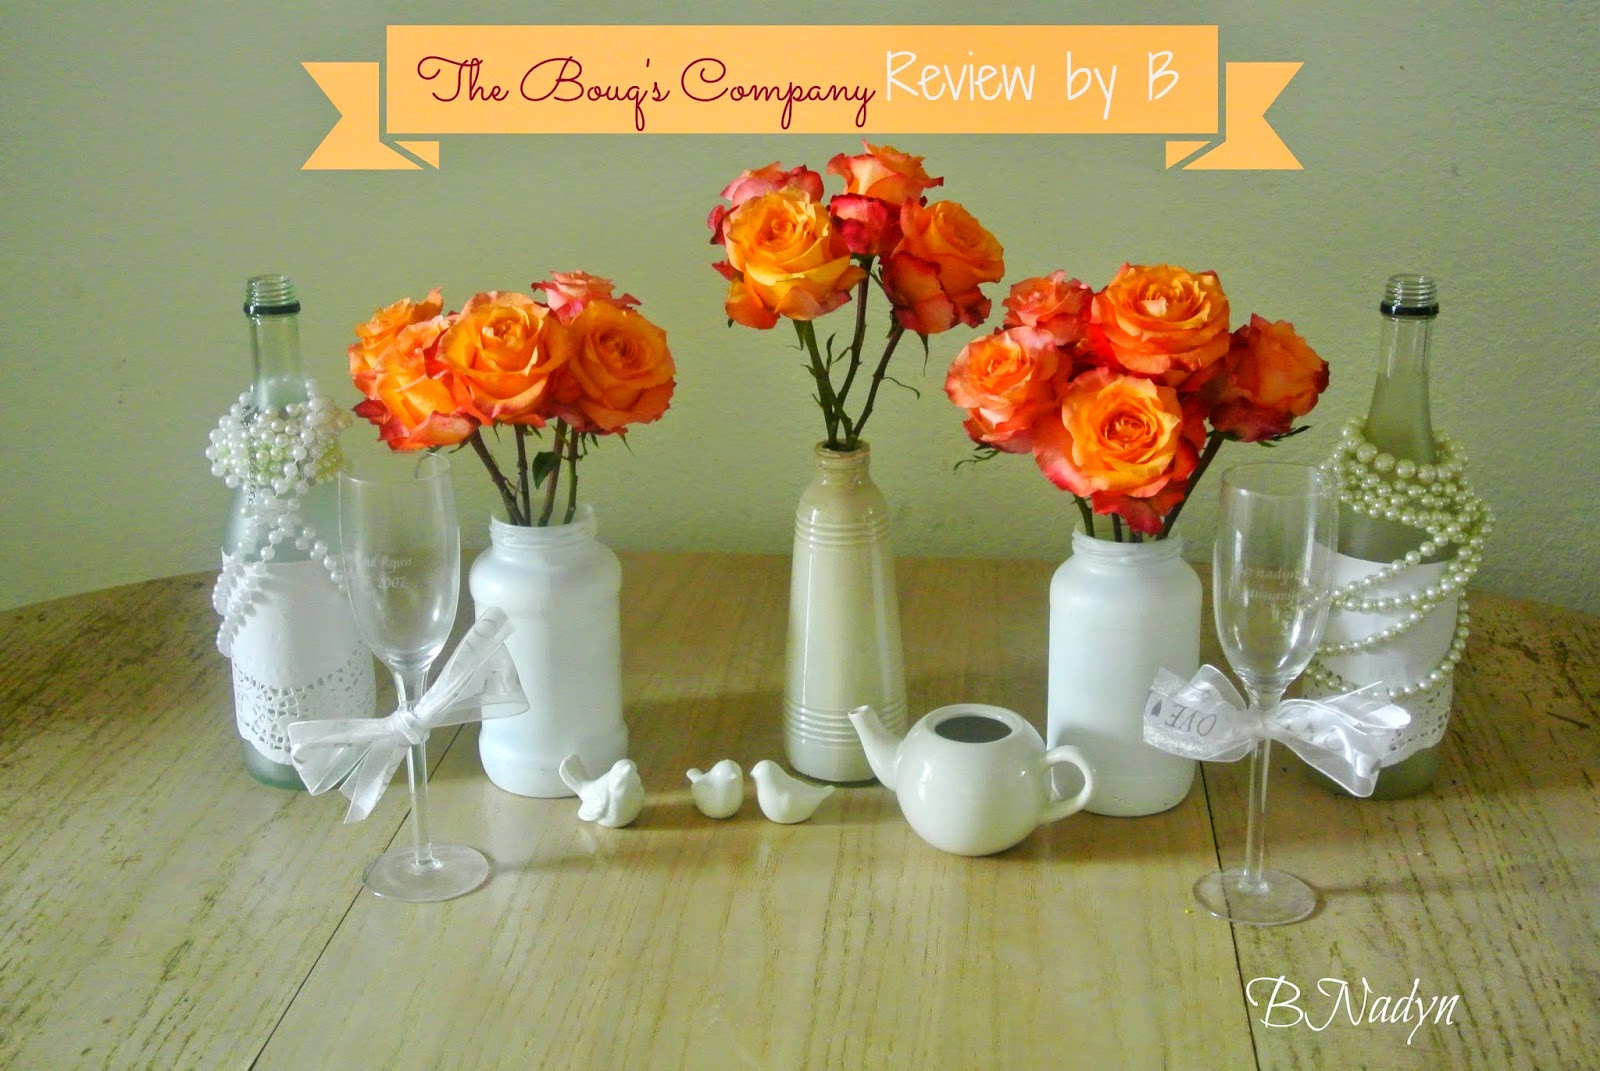 http://b-is4.blogspot.com/2014/08/the-bouqs-company-review-by-b.html